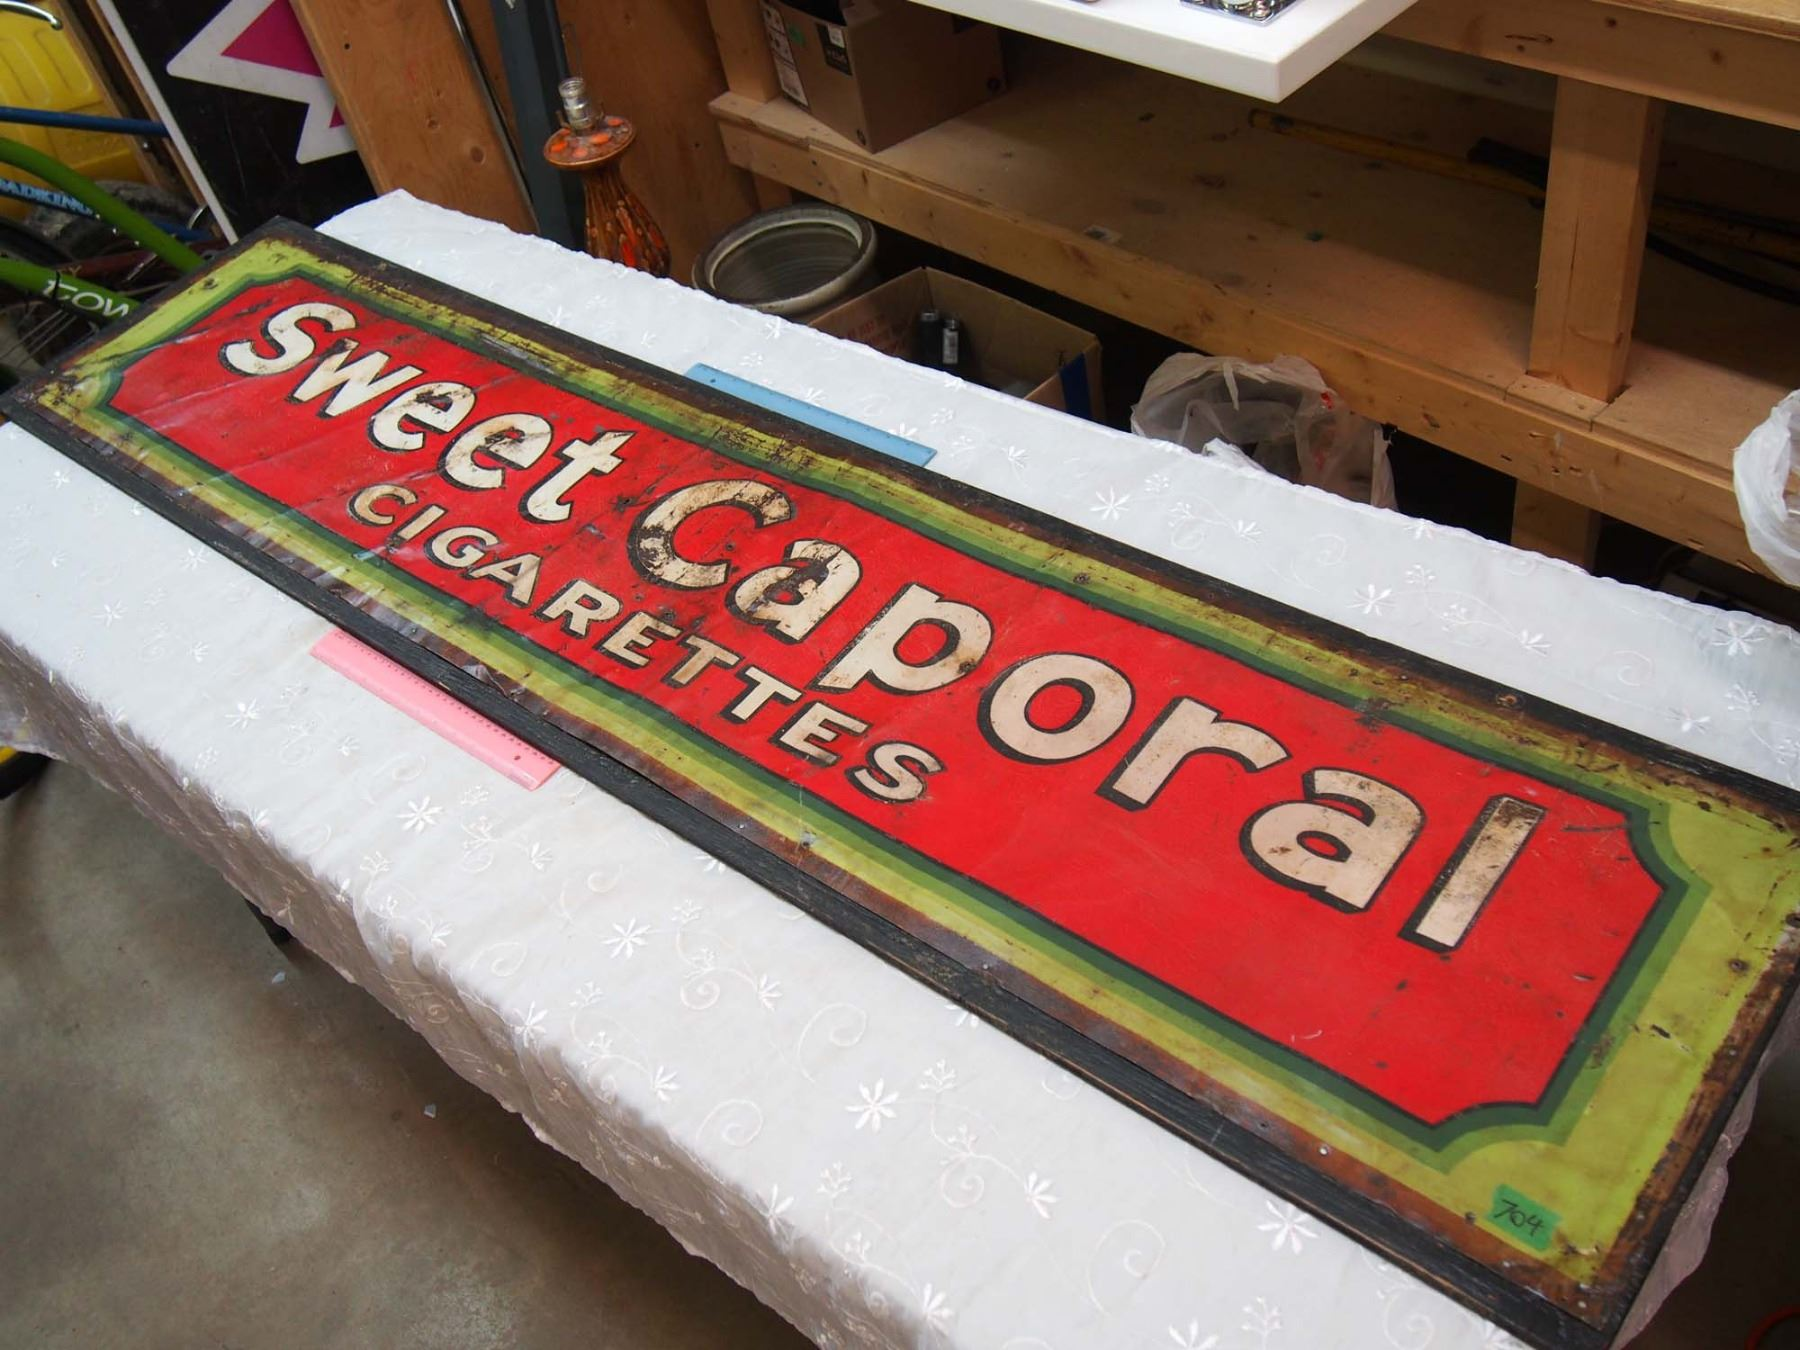 Sweet Caporal Cigarettes Tin Sign Mounted on Wood